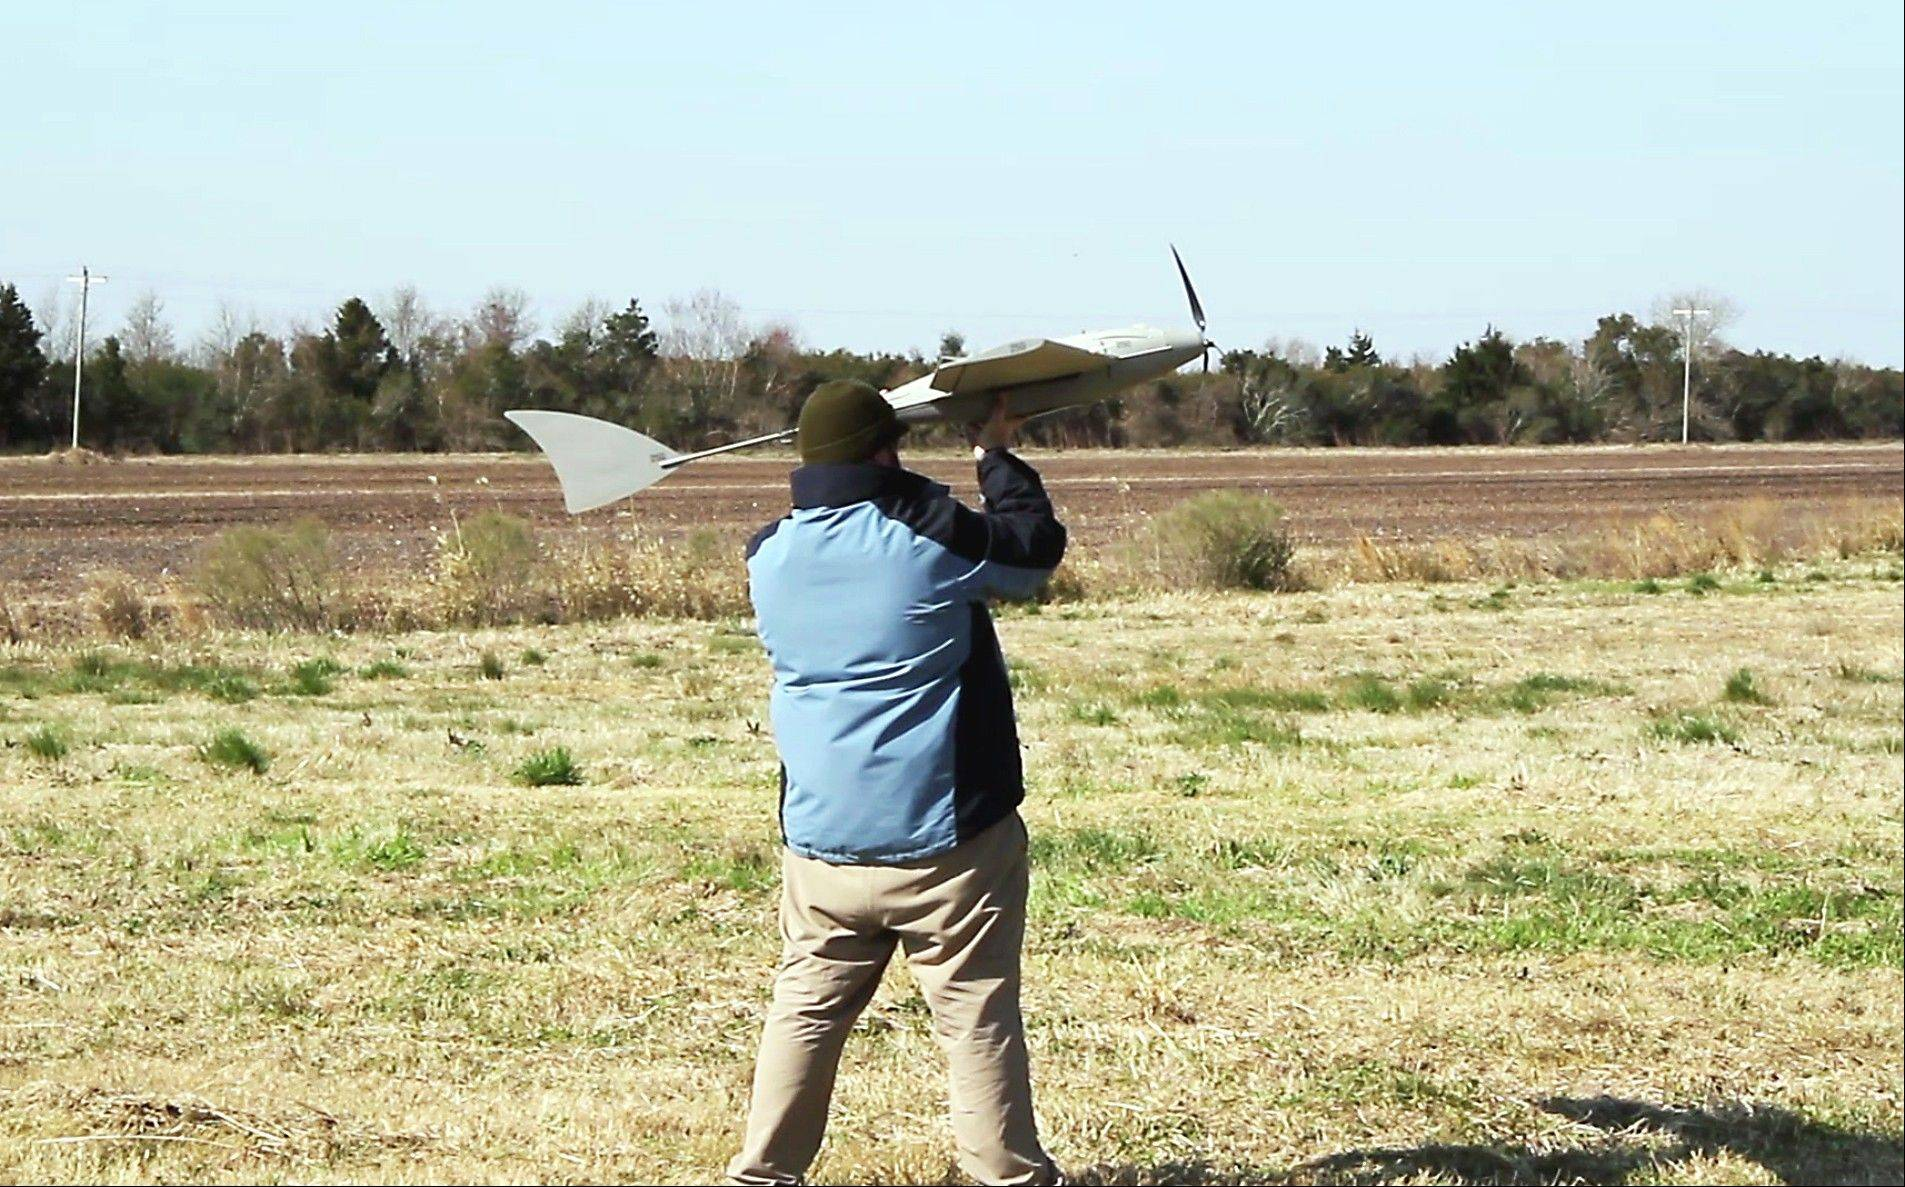 In this March 21, 2013, photo provided by the North Carolina Department of Transportation, a technician from BOSH Technologies prepares to launch a remotely piloted aircraft during the first test flight at Hyde County Airport in Engelhard, N.C. A little-noted provision in North Carolina's budget bans police and other government agencies to buy surveillance drones for the next two years as state lawmakers study the balance between security and privacy. Varied legislation involving drones was introduced this year in more than 40 states